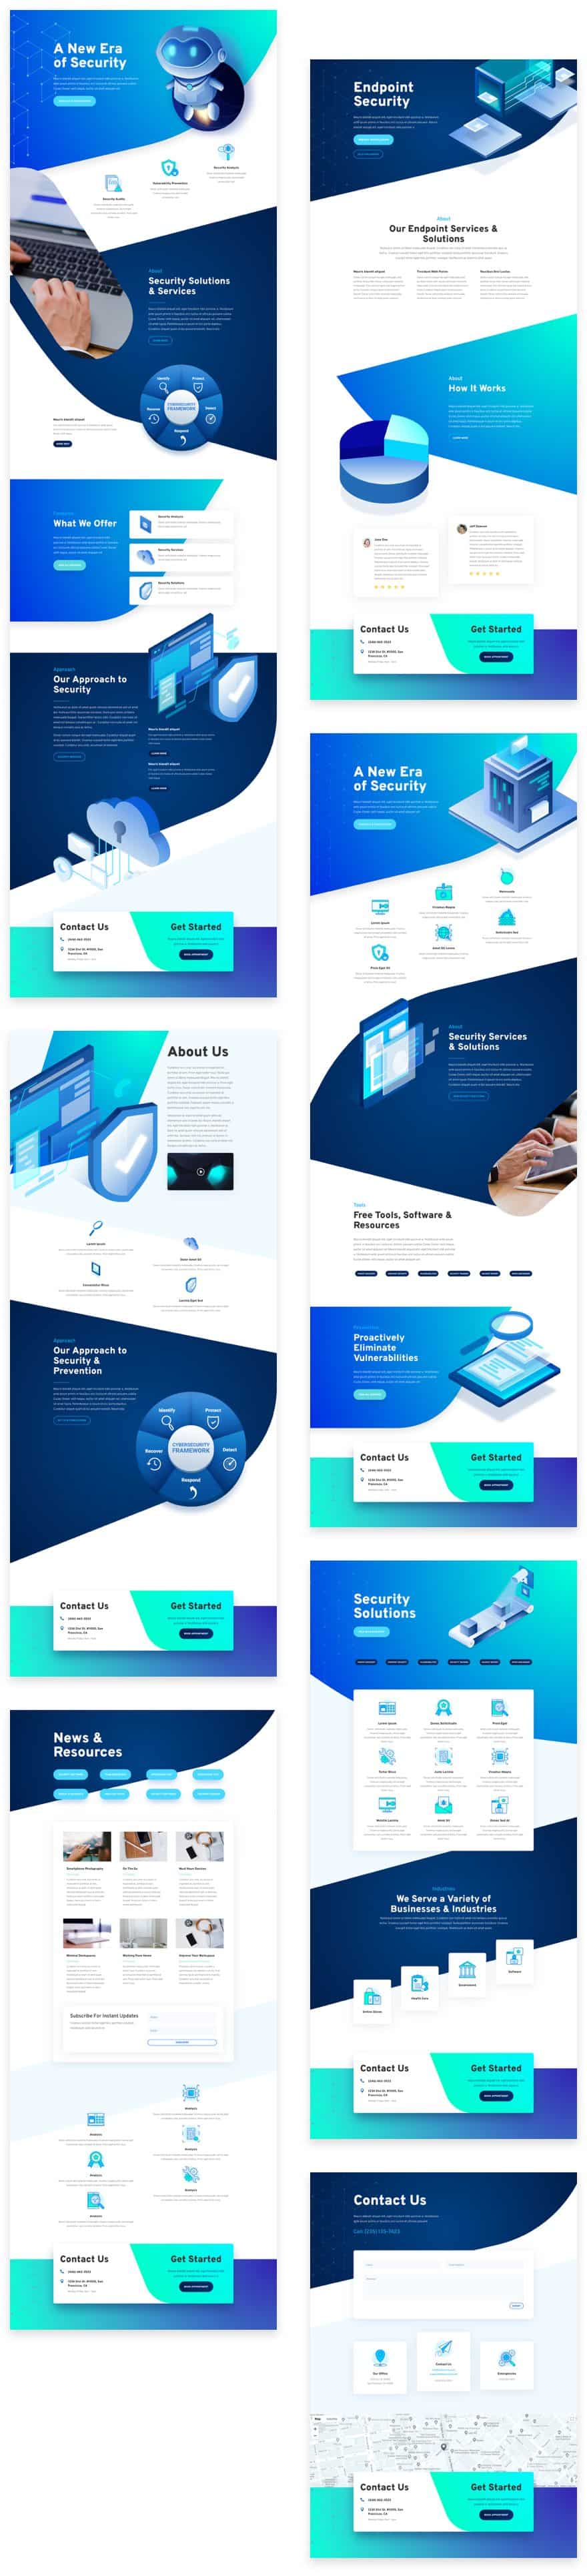 Cyber Security Divi Layout Pack